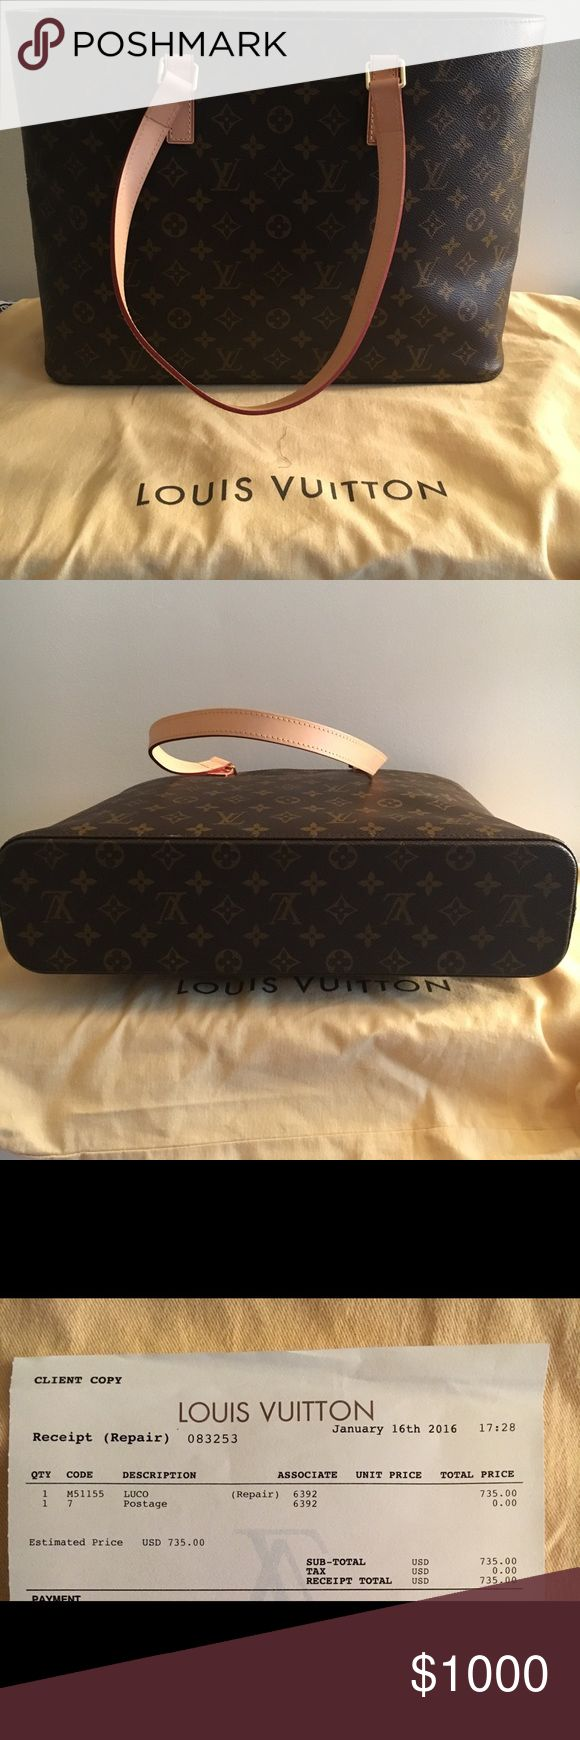 "Louis Vuitton Luco Original Louis Vuitton lugo bag; barely used in excellent condition; comes w original dust bag; Width 16 inches, length 12 inches, 4 inches deep. New interior and straps...""Like New"" condition! Louis Vuitton Bags Travel Bags"